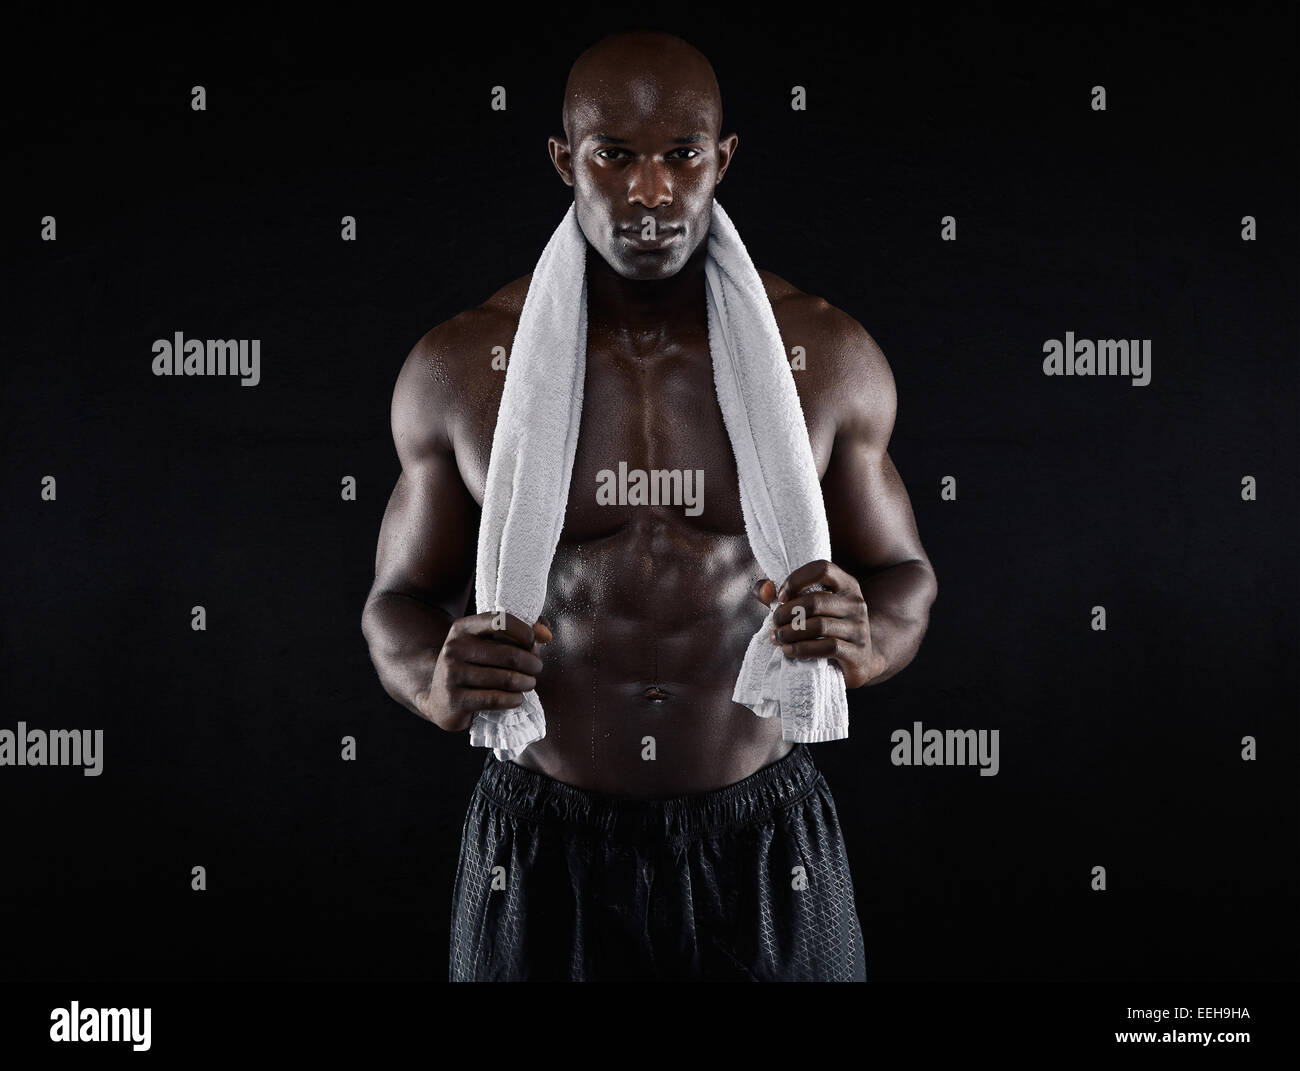 Shirtless muscular man holding towel looking at camera on black background. Fit young African man after workout. - Stock Image